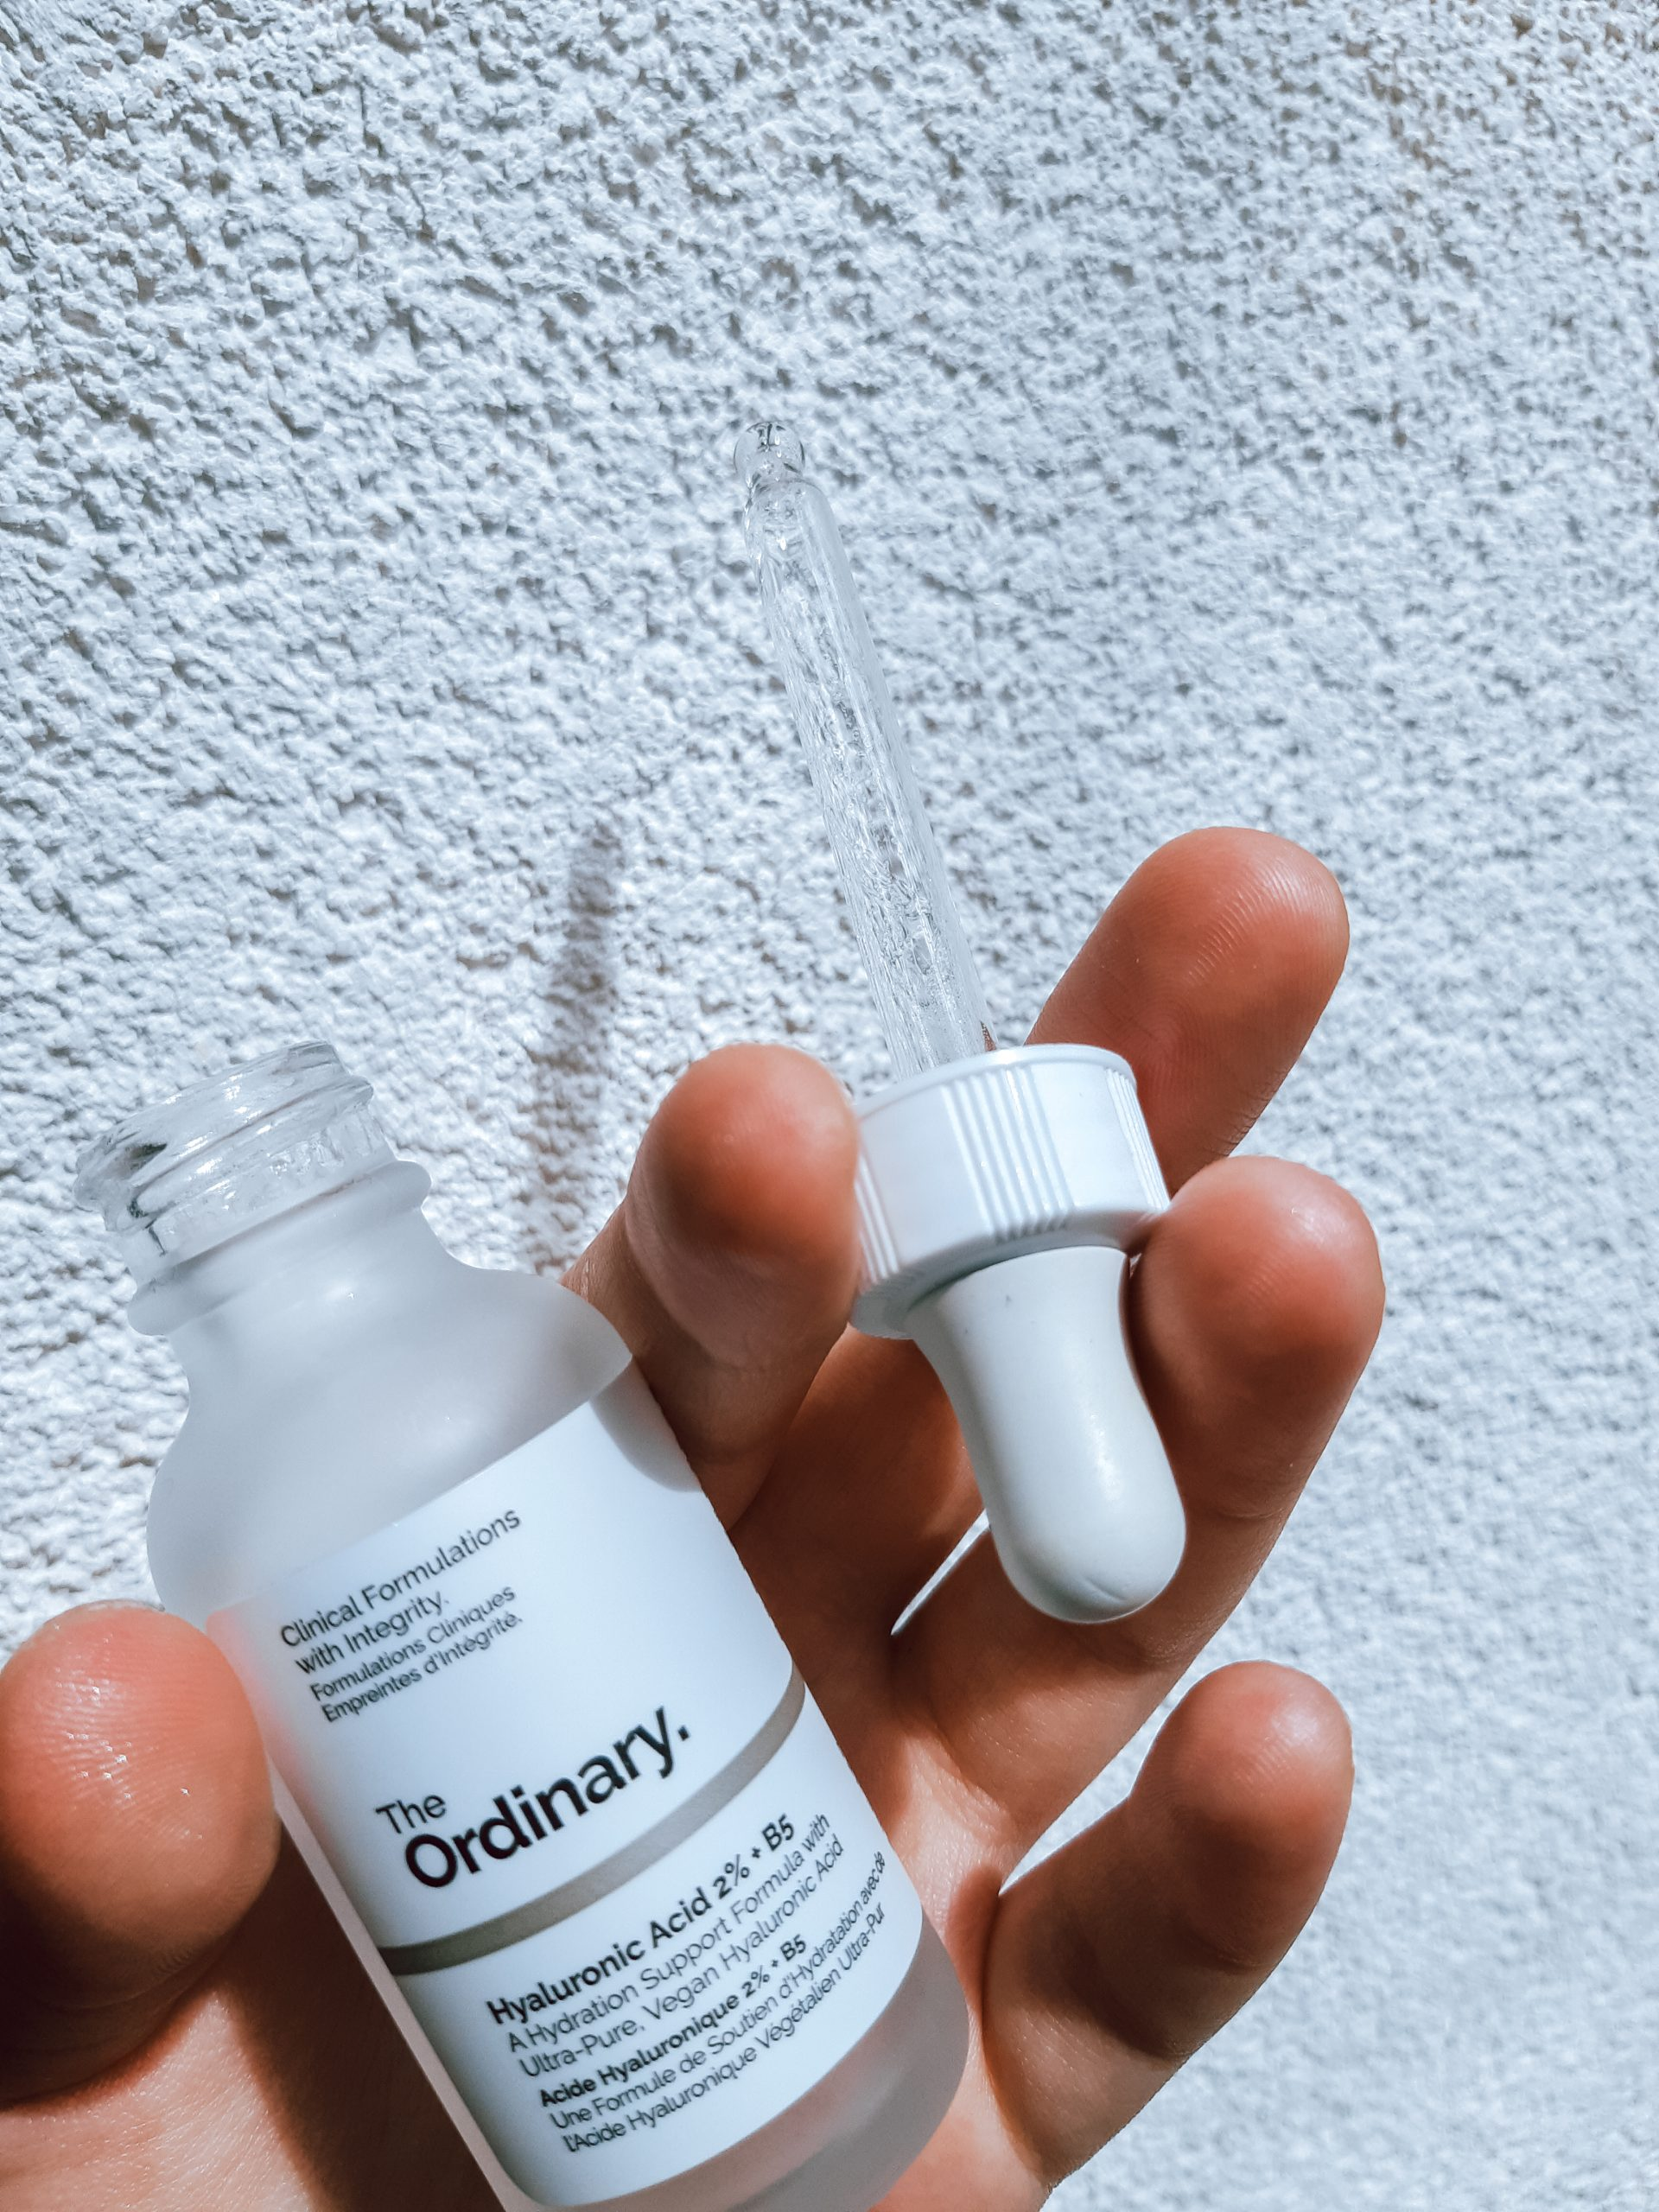 the ordinary hyaluronic acid 2% + b5 review recenzija livinglikev fashion blogger